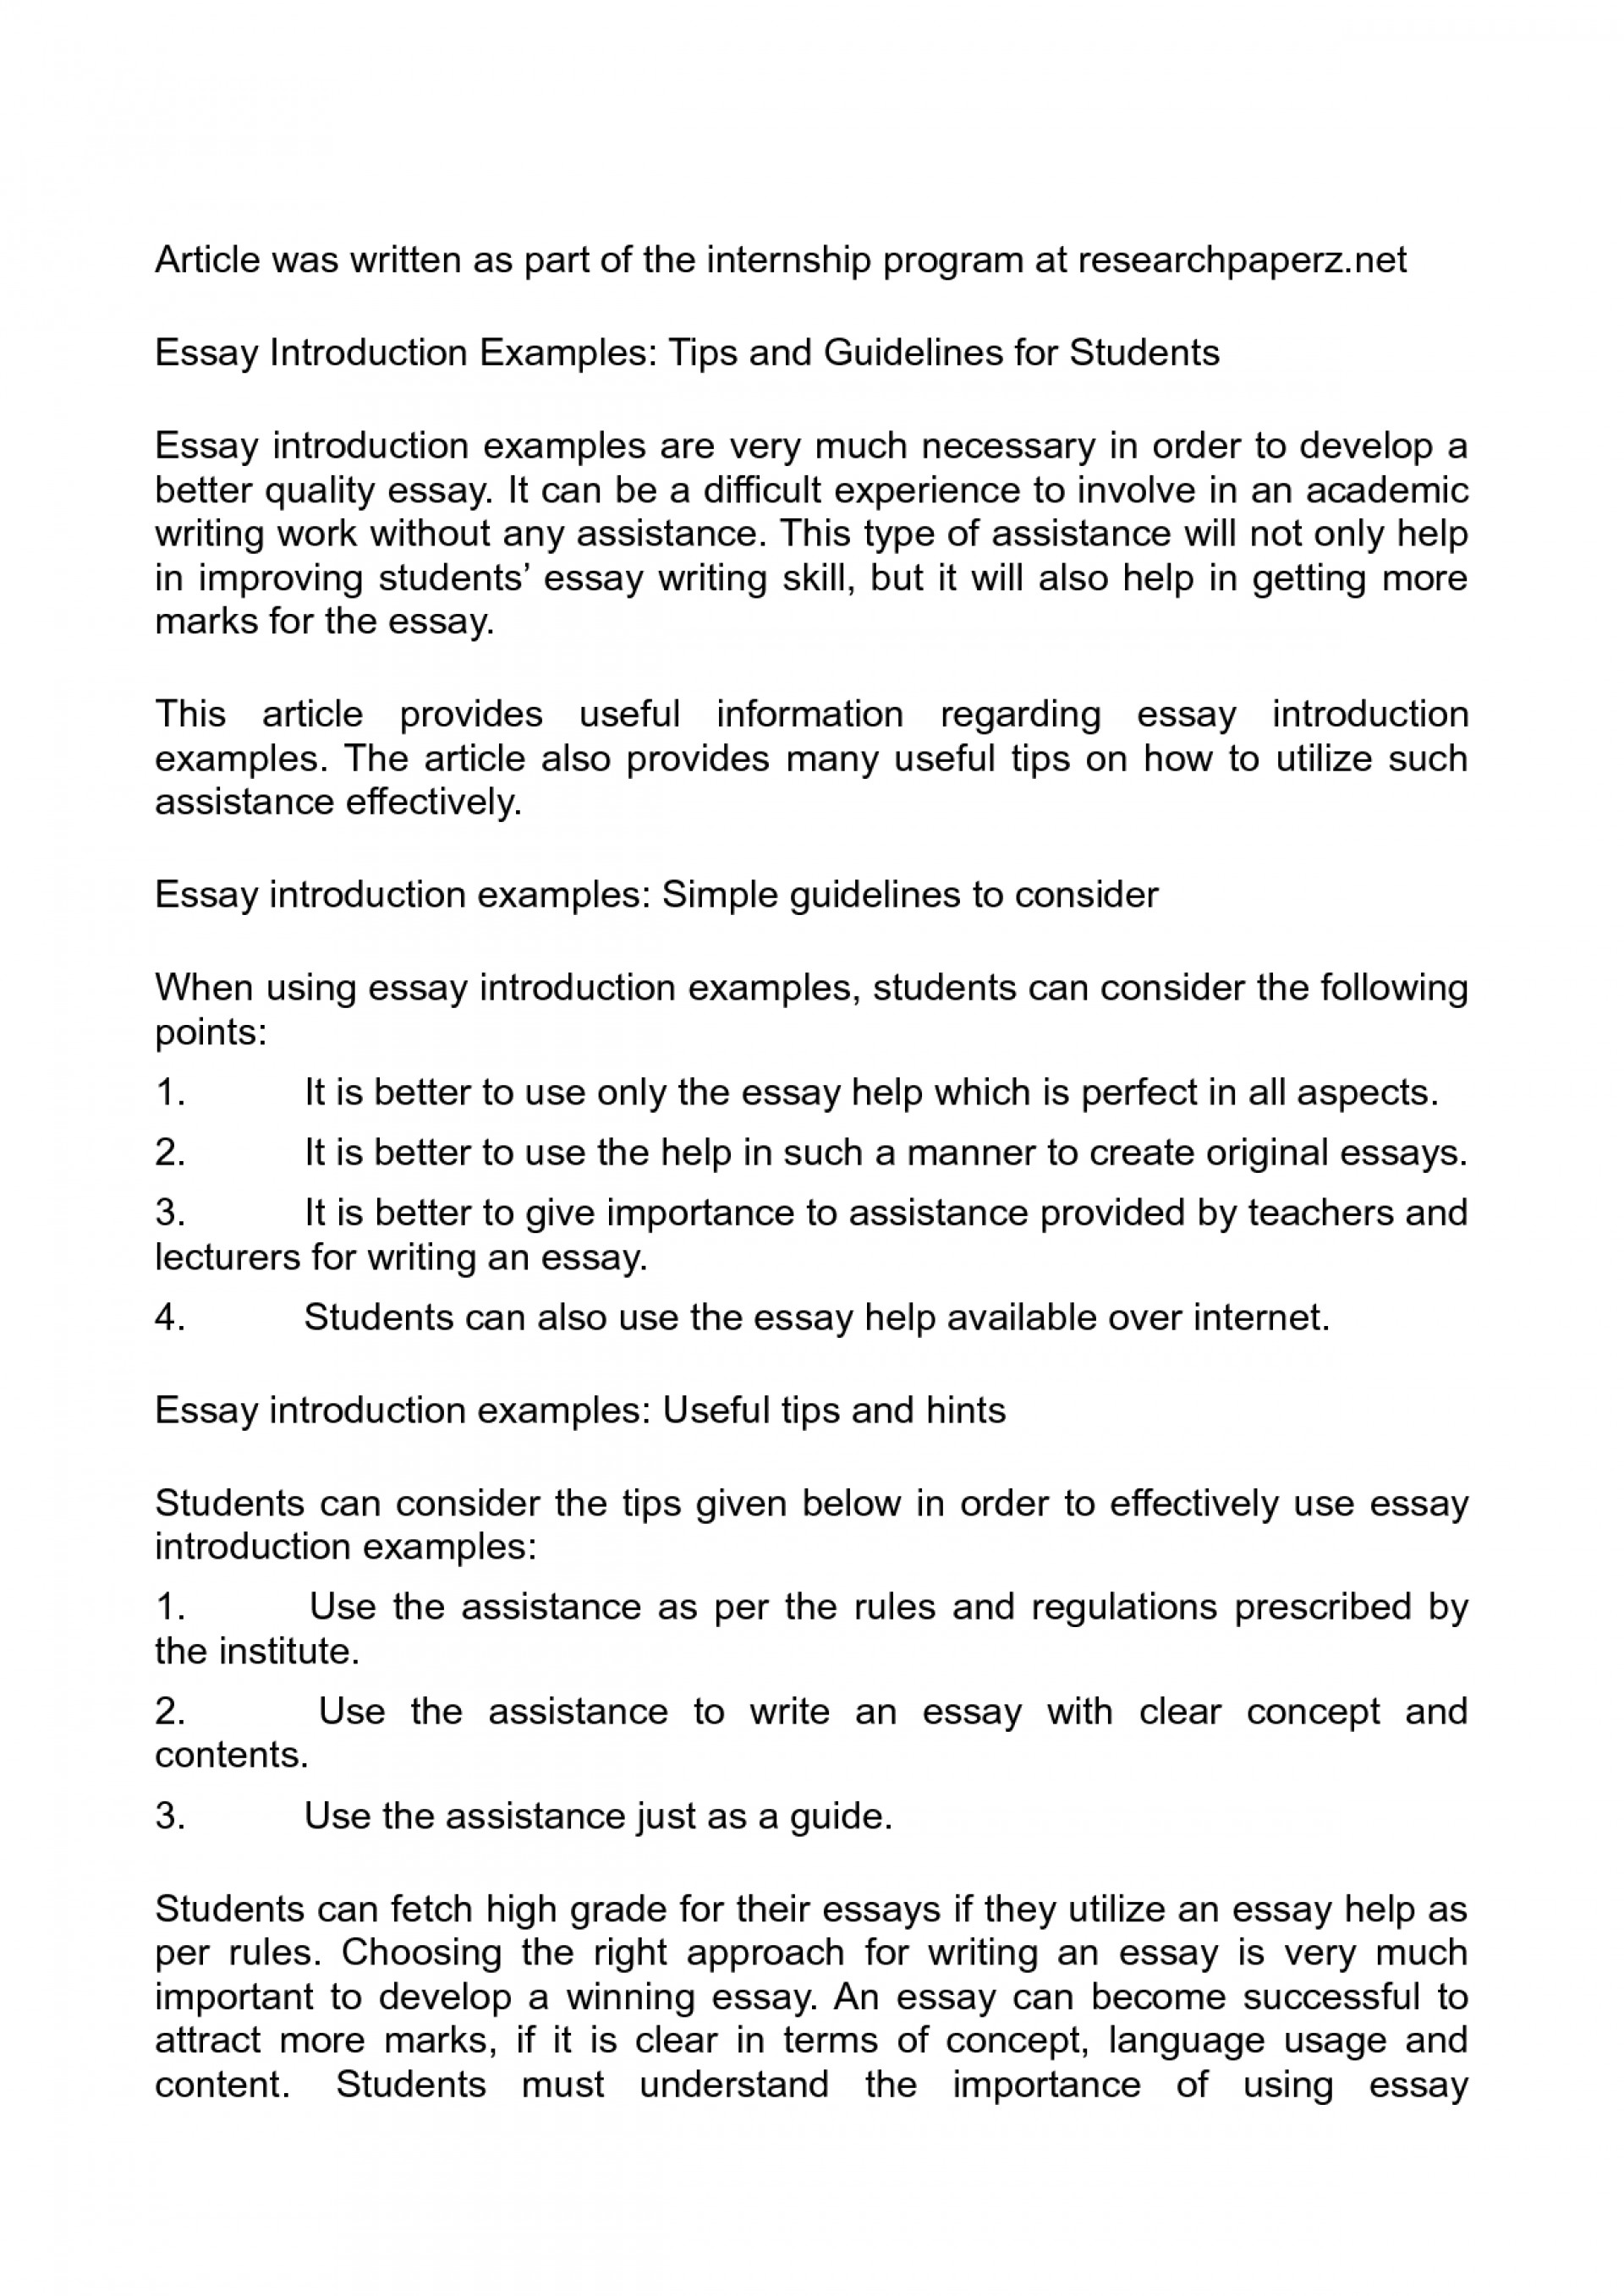 004 Eyx5t6okob Essay Introduction Sample Singular Examples University Pdf College Format 1920